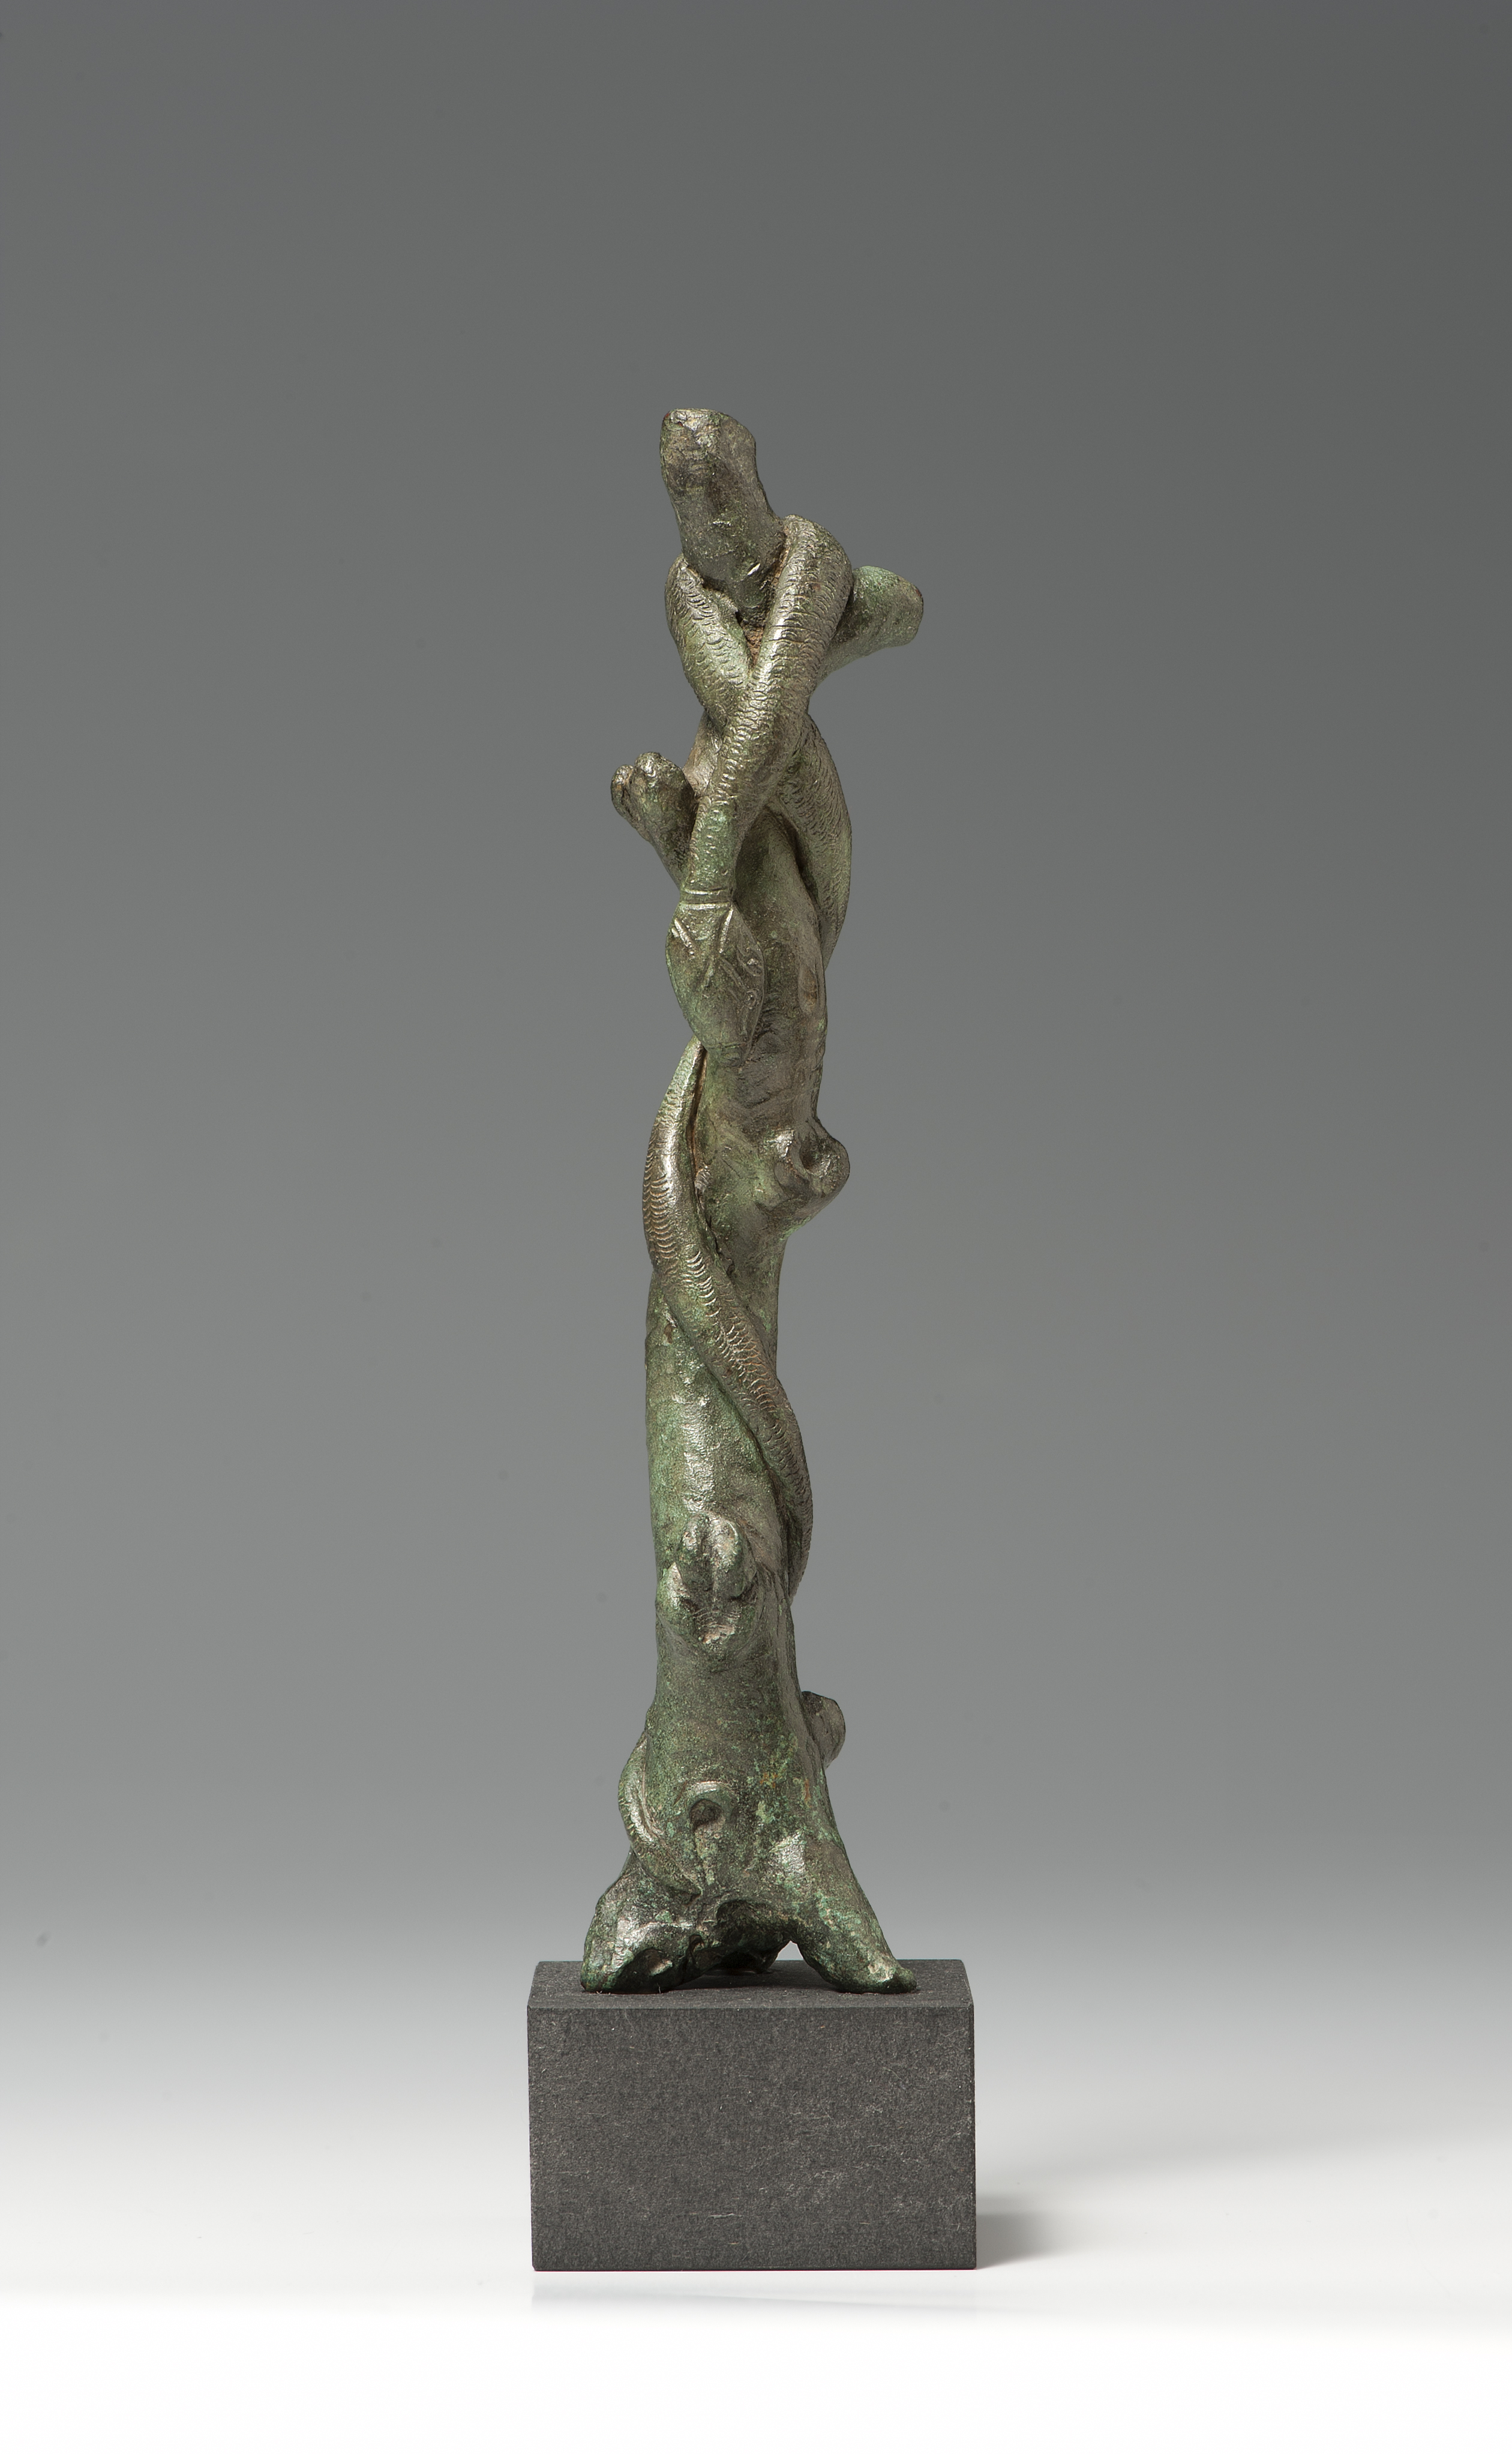 A Bronze Statuette in the Form of a Serpent-entwined Tree